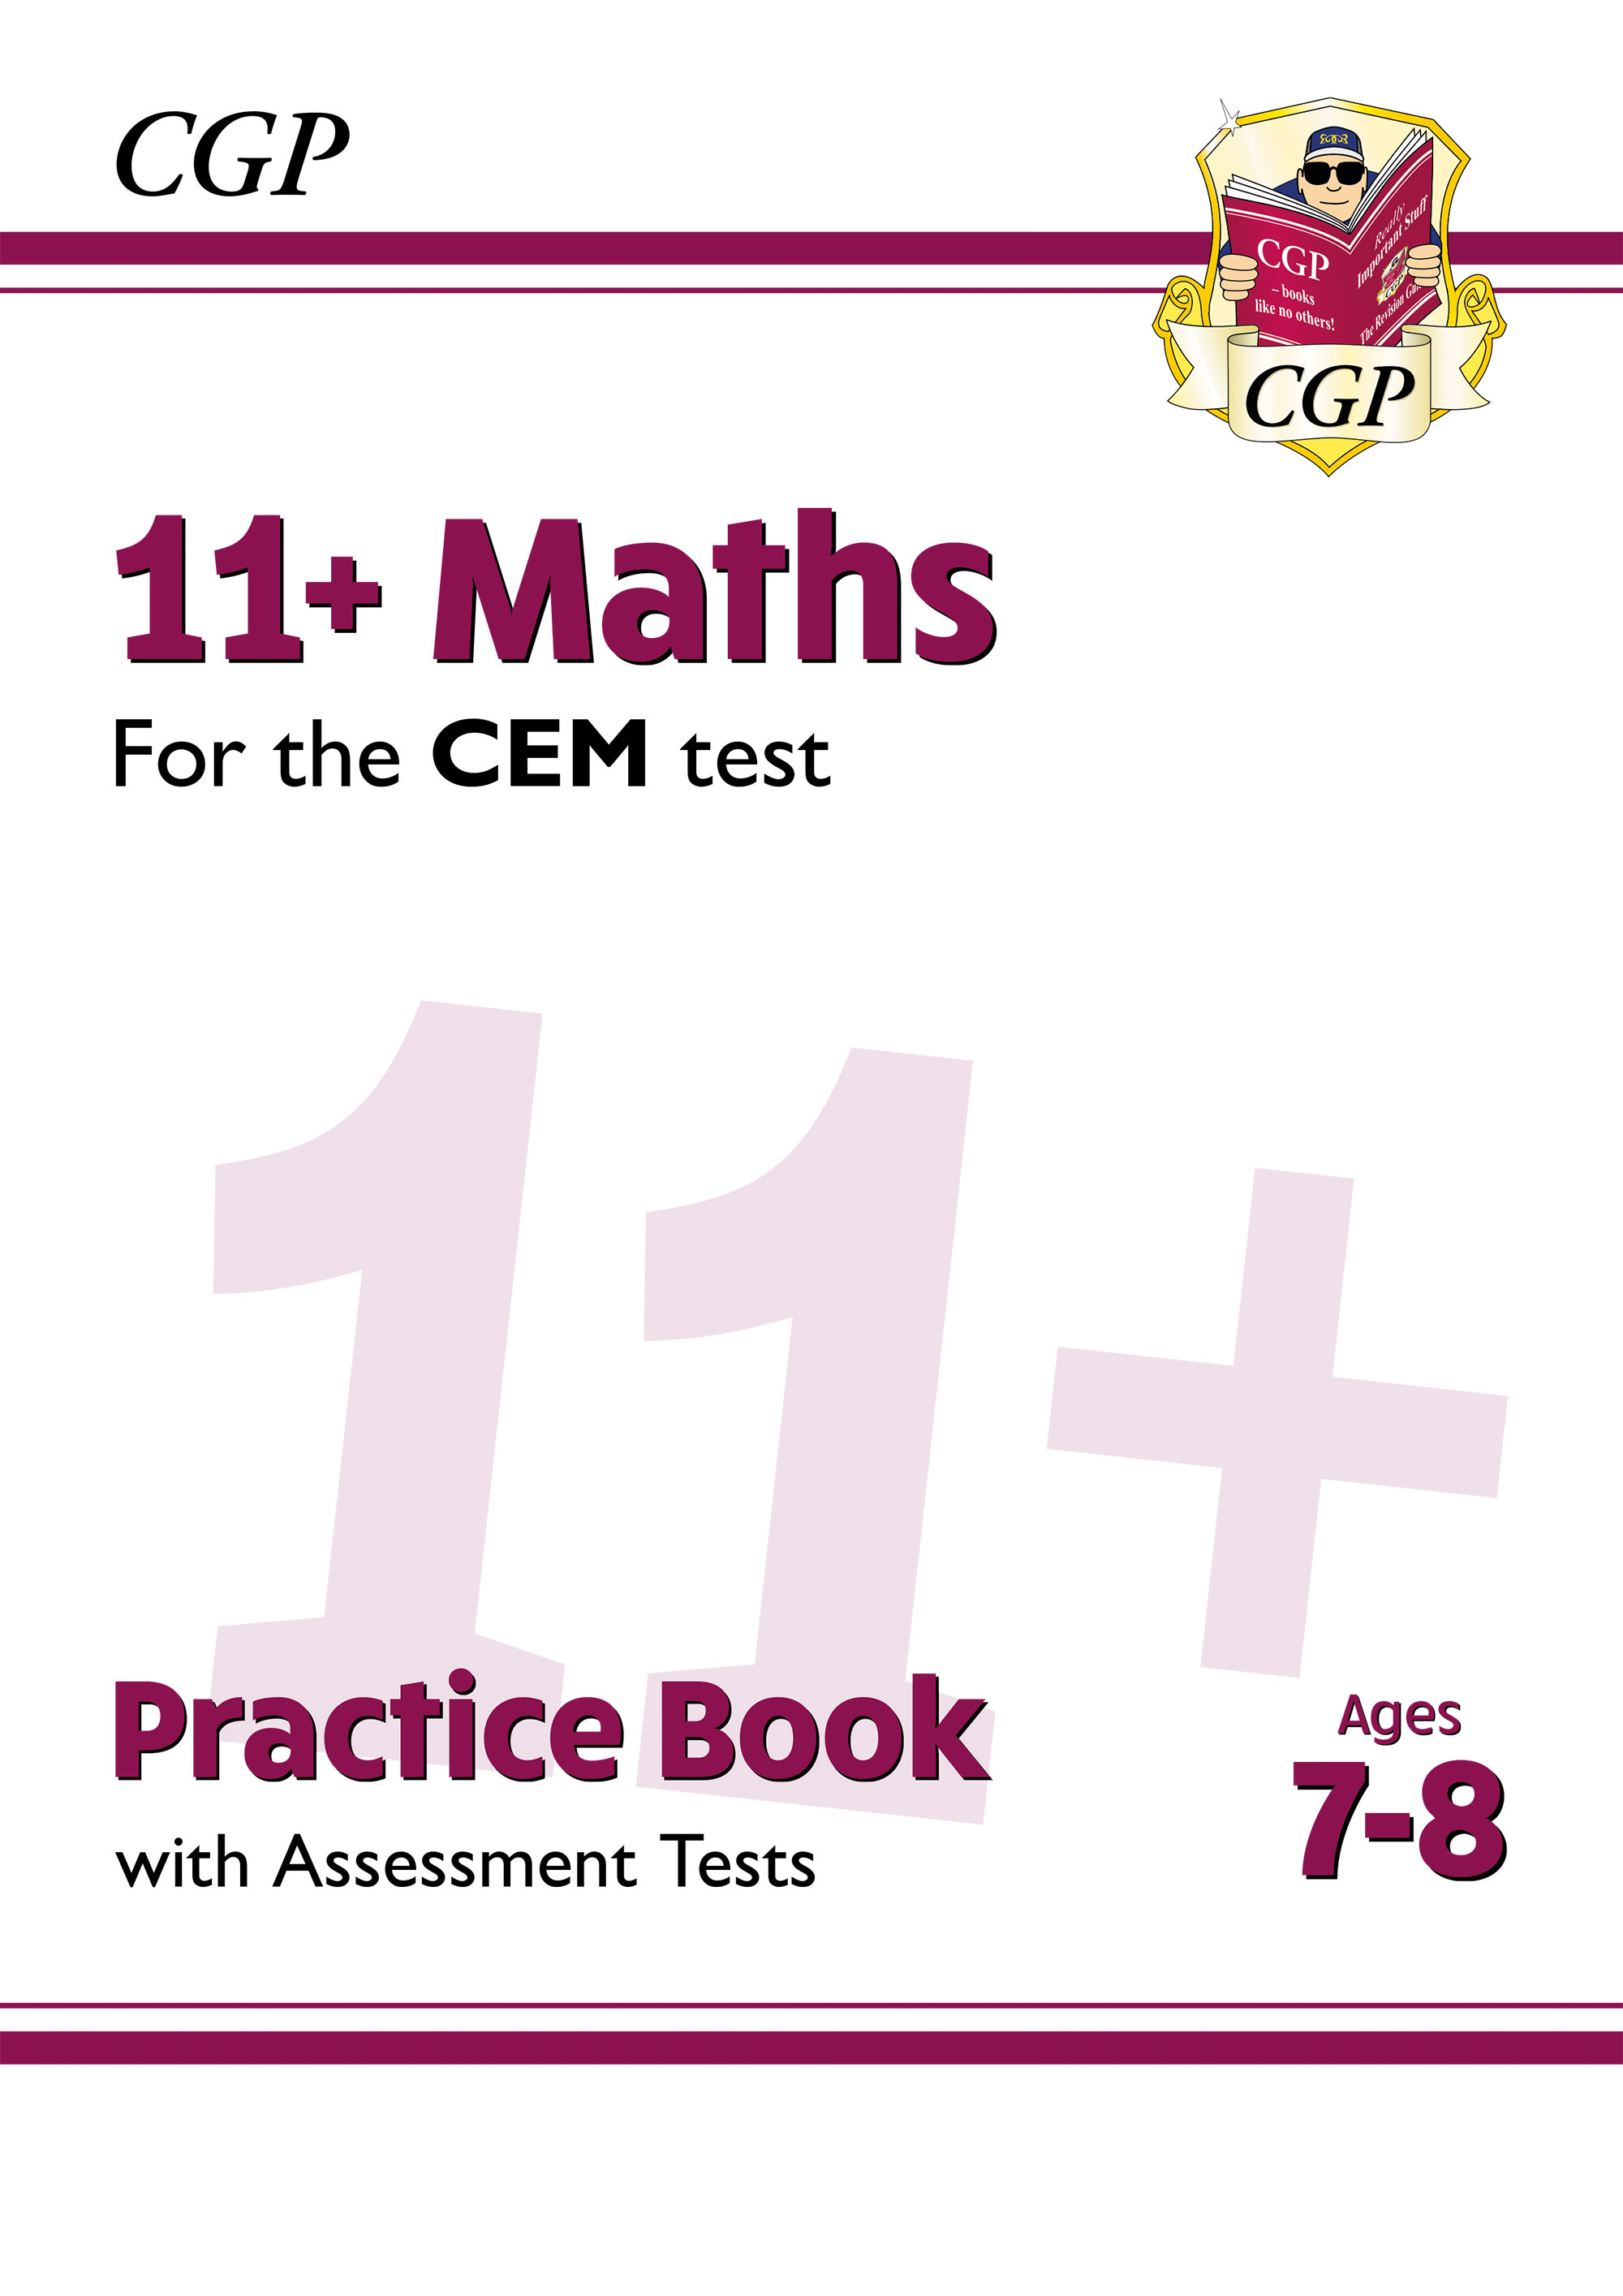 M3QDE2DK - New 11+ CEM Maths Practice Book & Assessment Tests - Ages 7-8